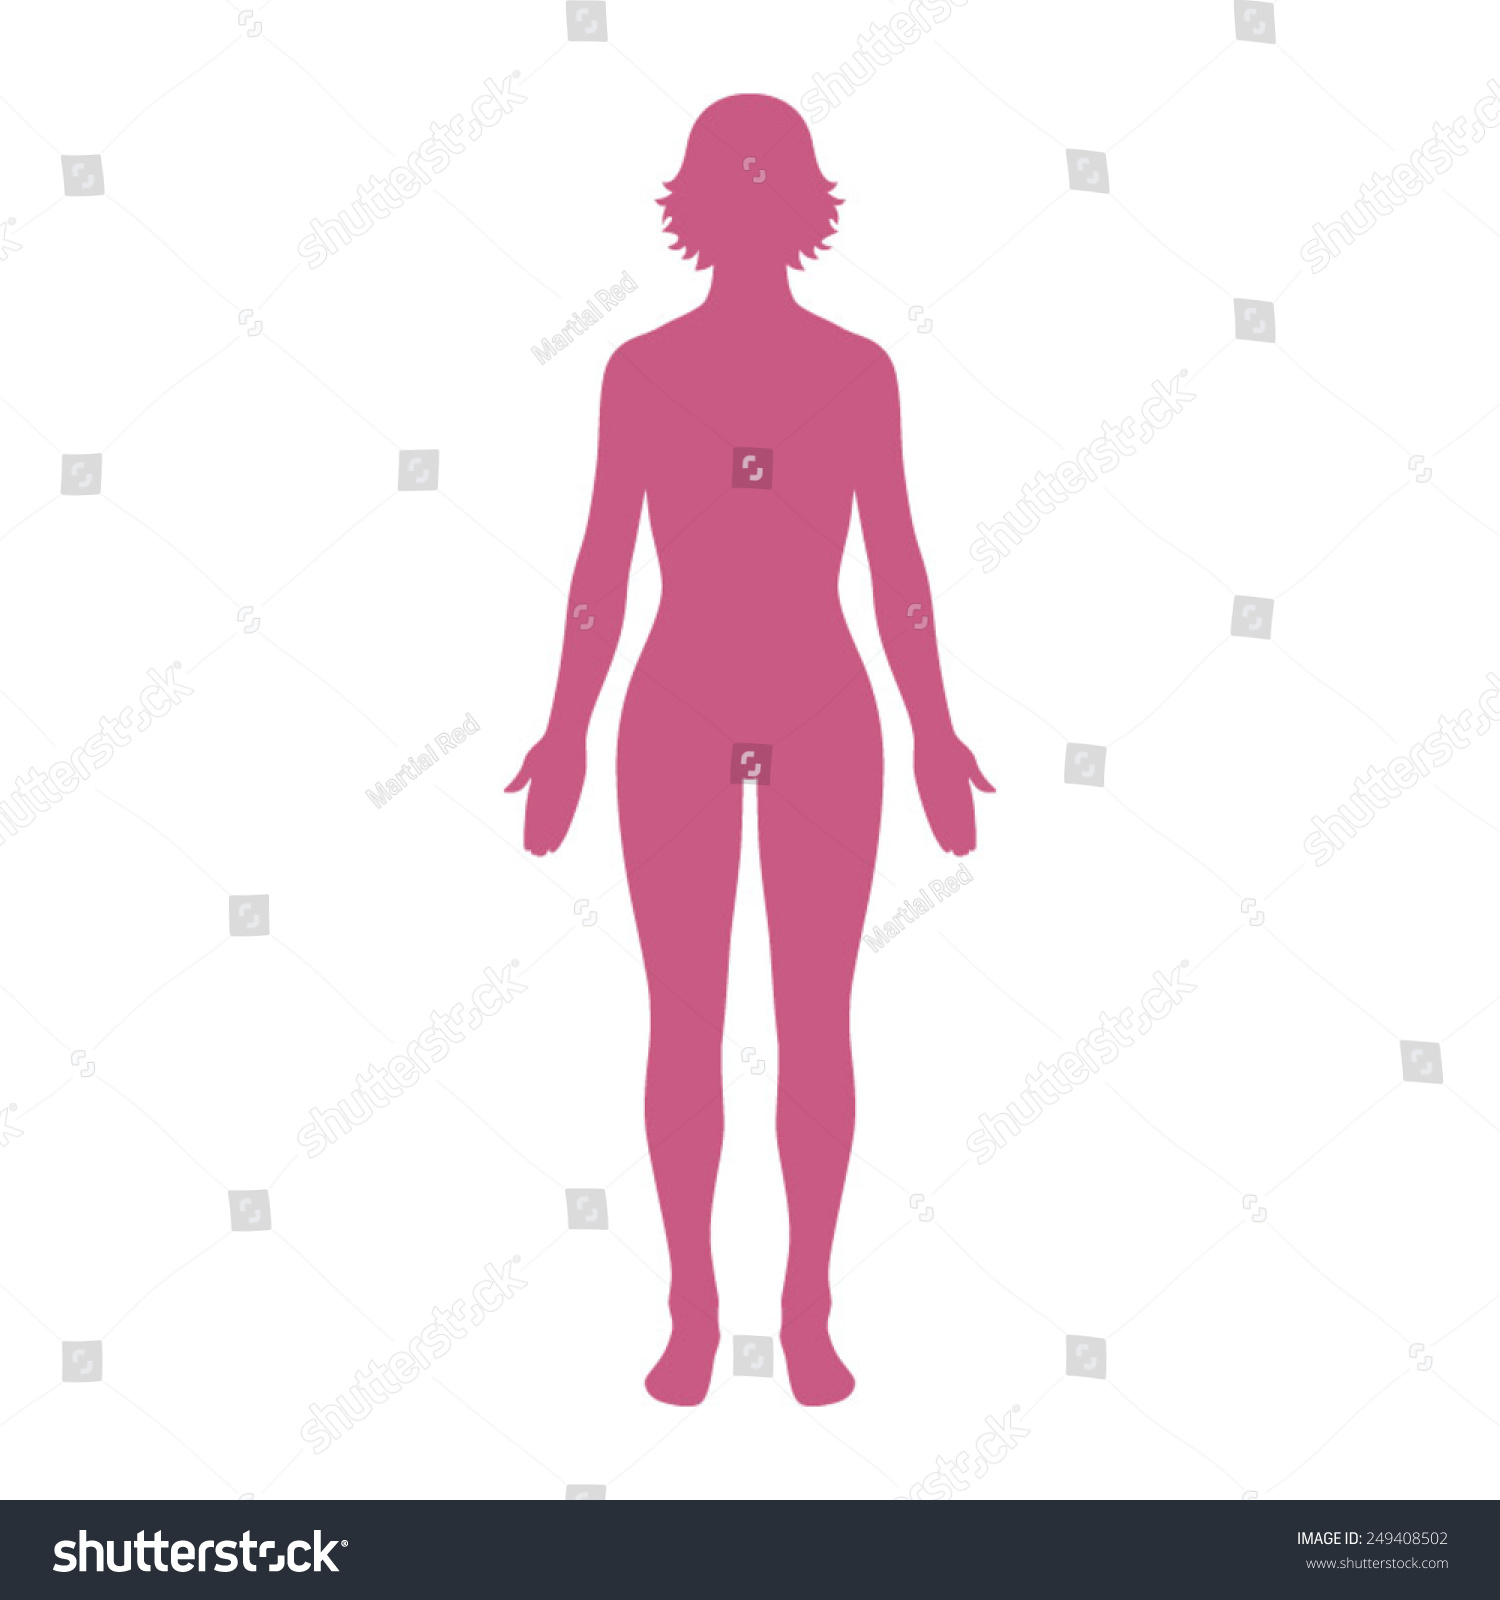 Female Human Body Belonging Adult Woman Stock Vector Royalty Free